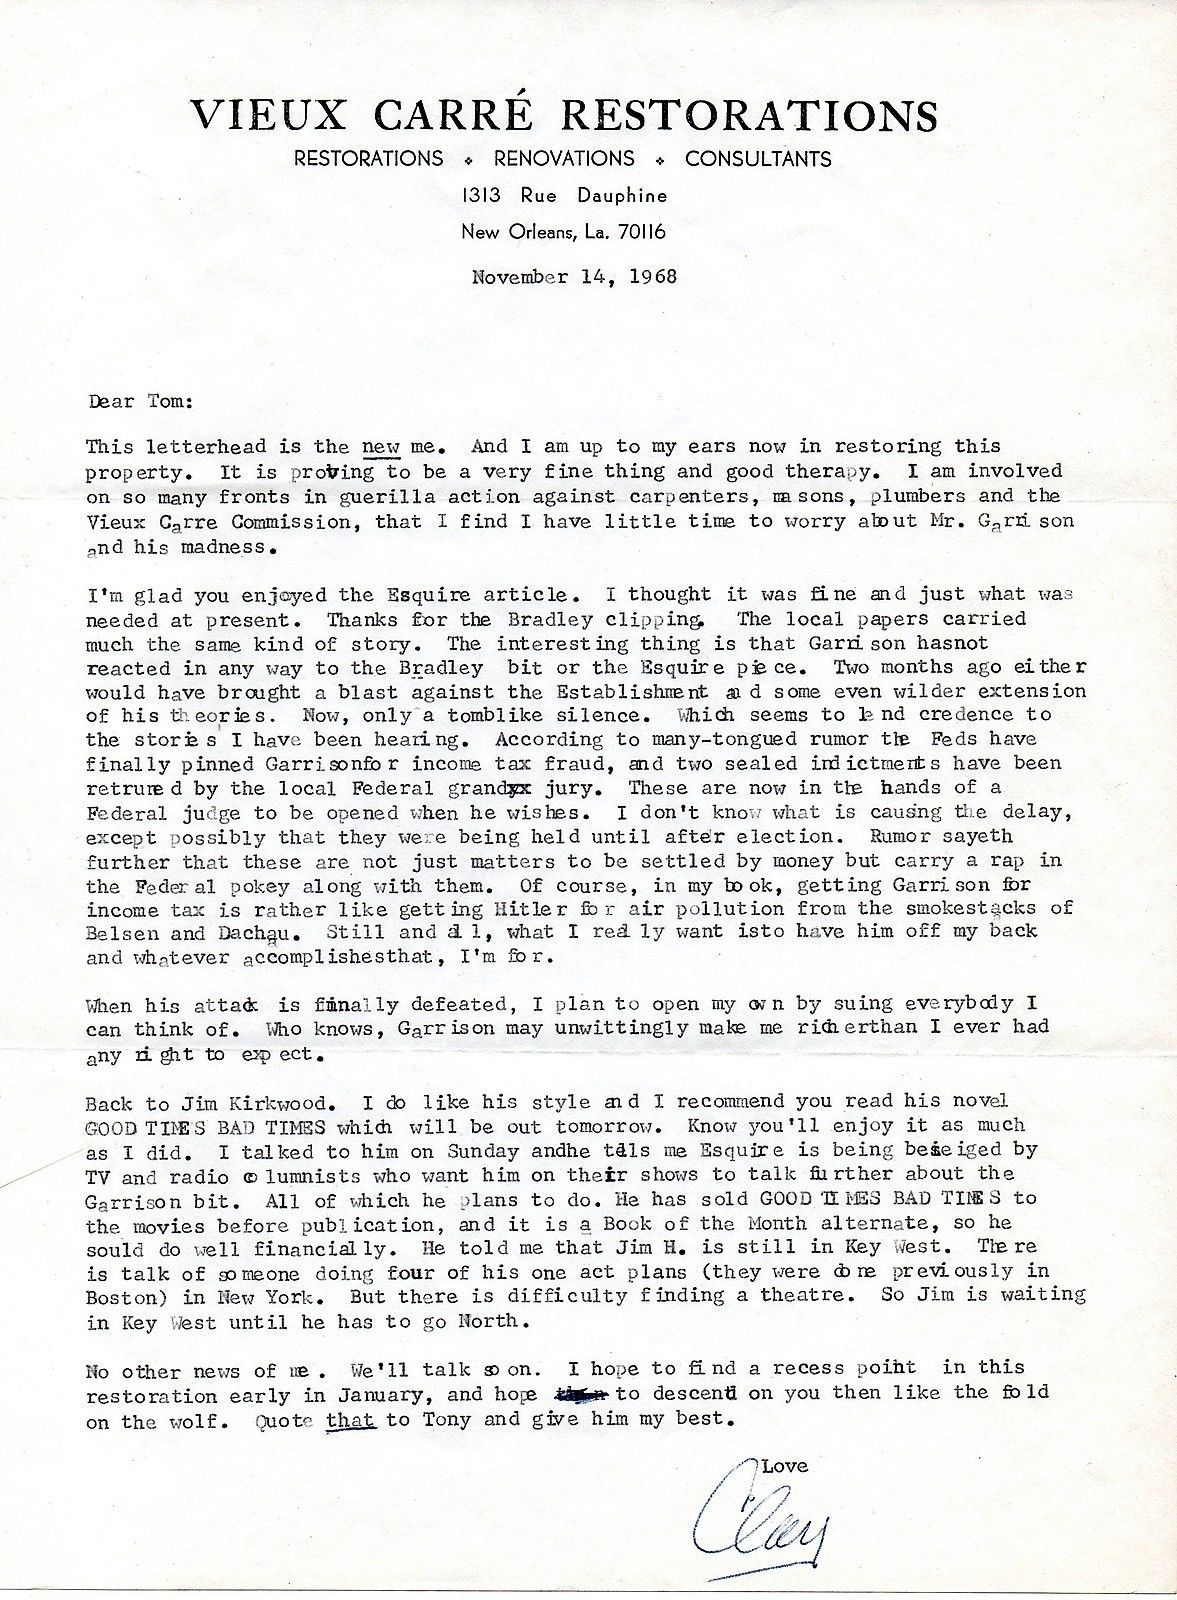 CLAY SHAW Signed letter-1968- writing about Jim Garrison - JFK assassination (?)